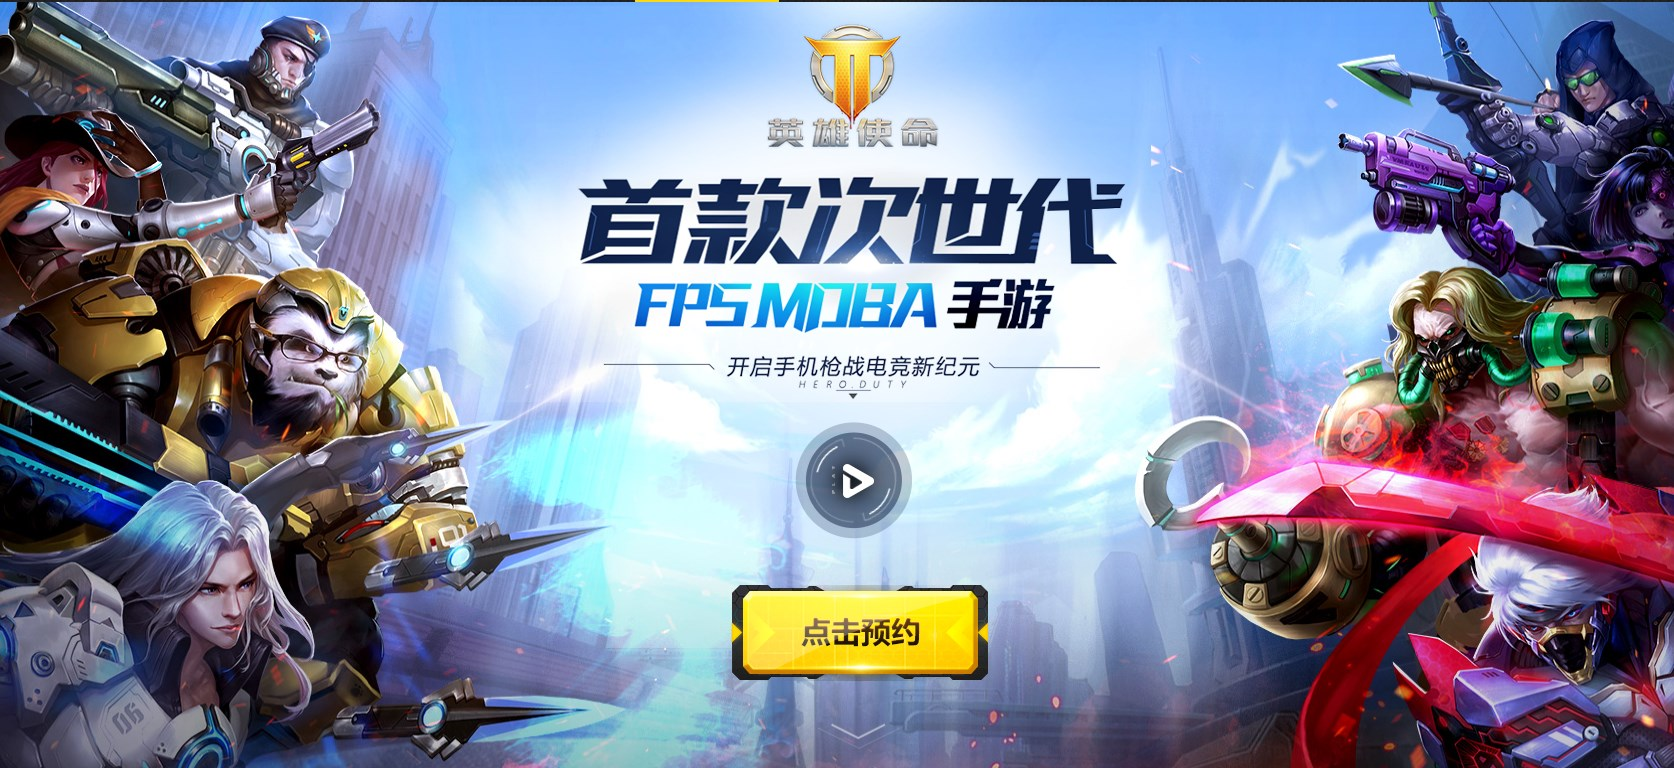 Game mobile nhái Overwatch lại tiếp tục thử nghiệm